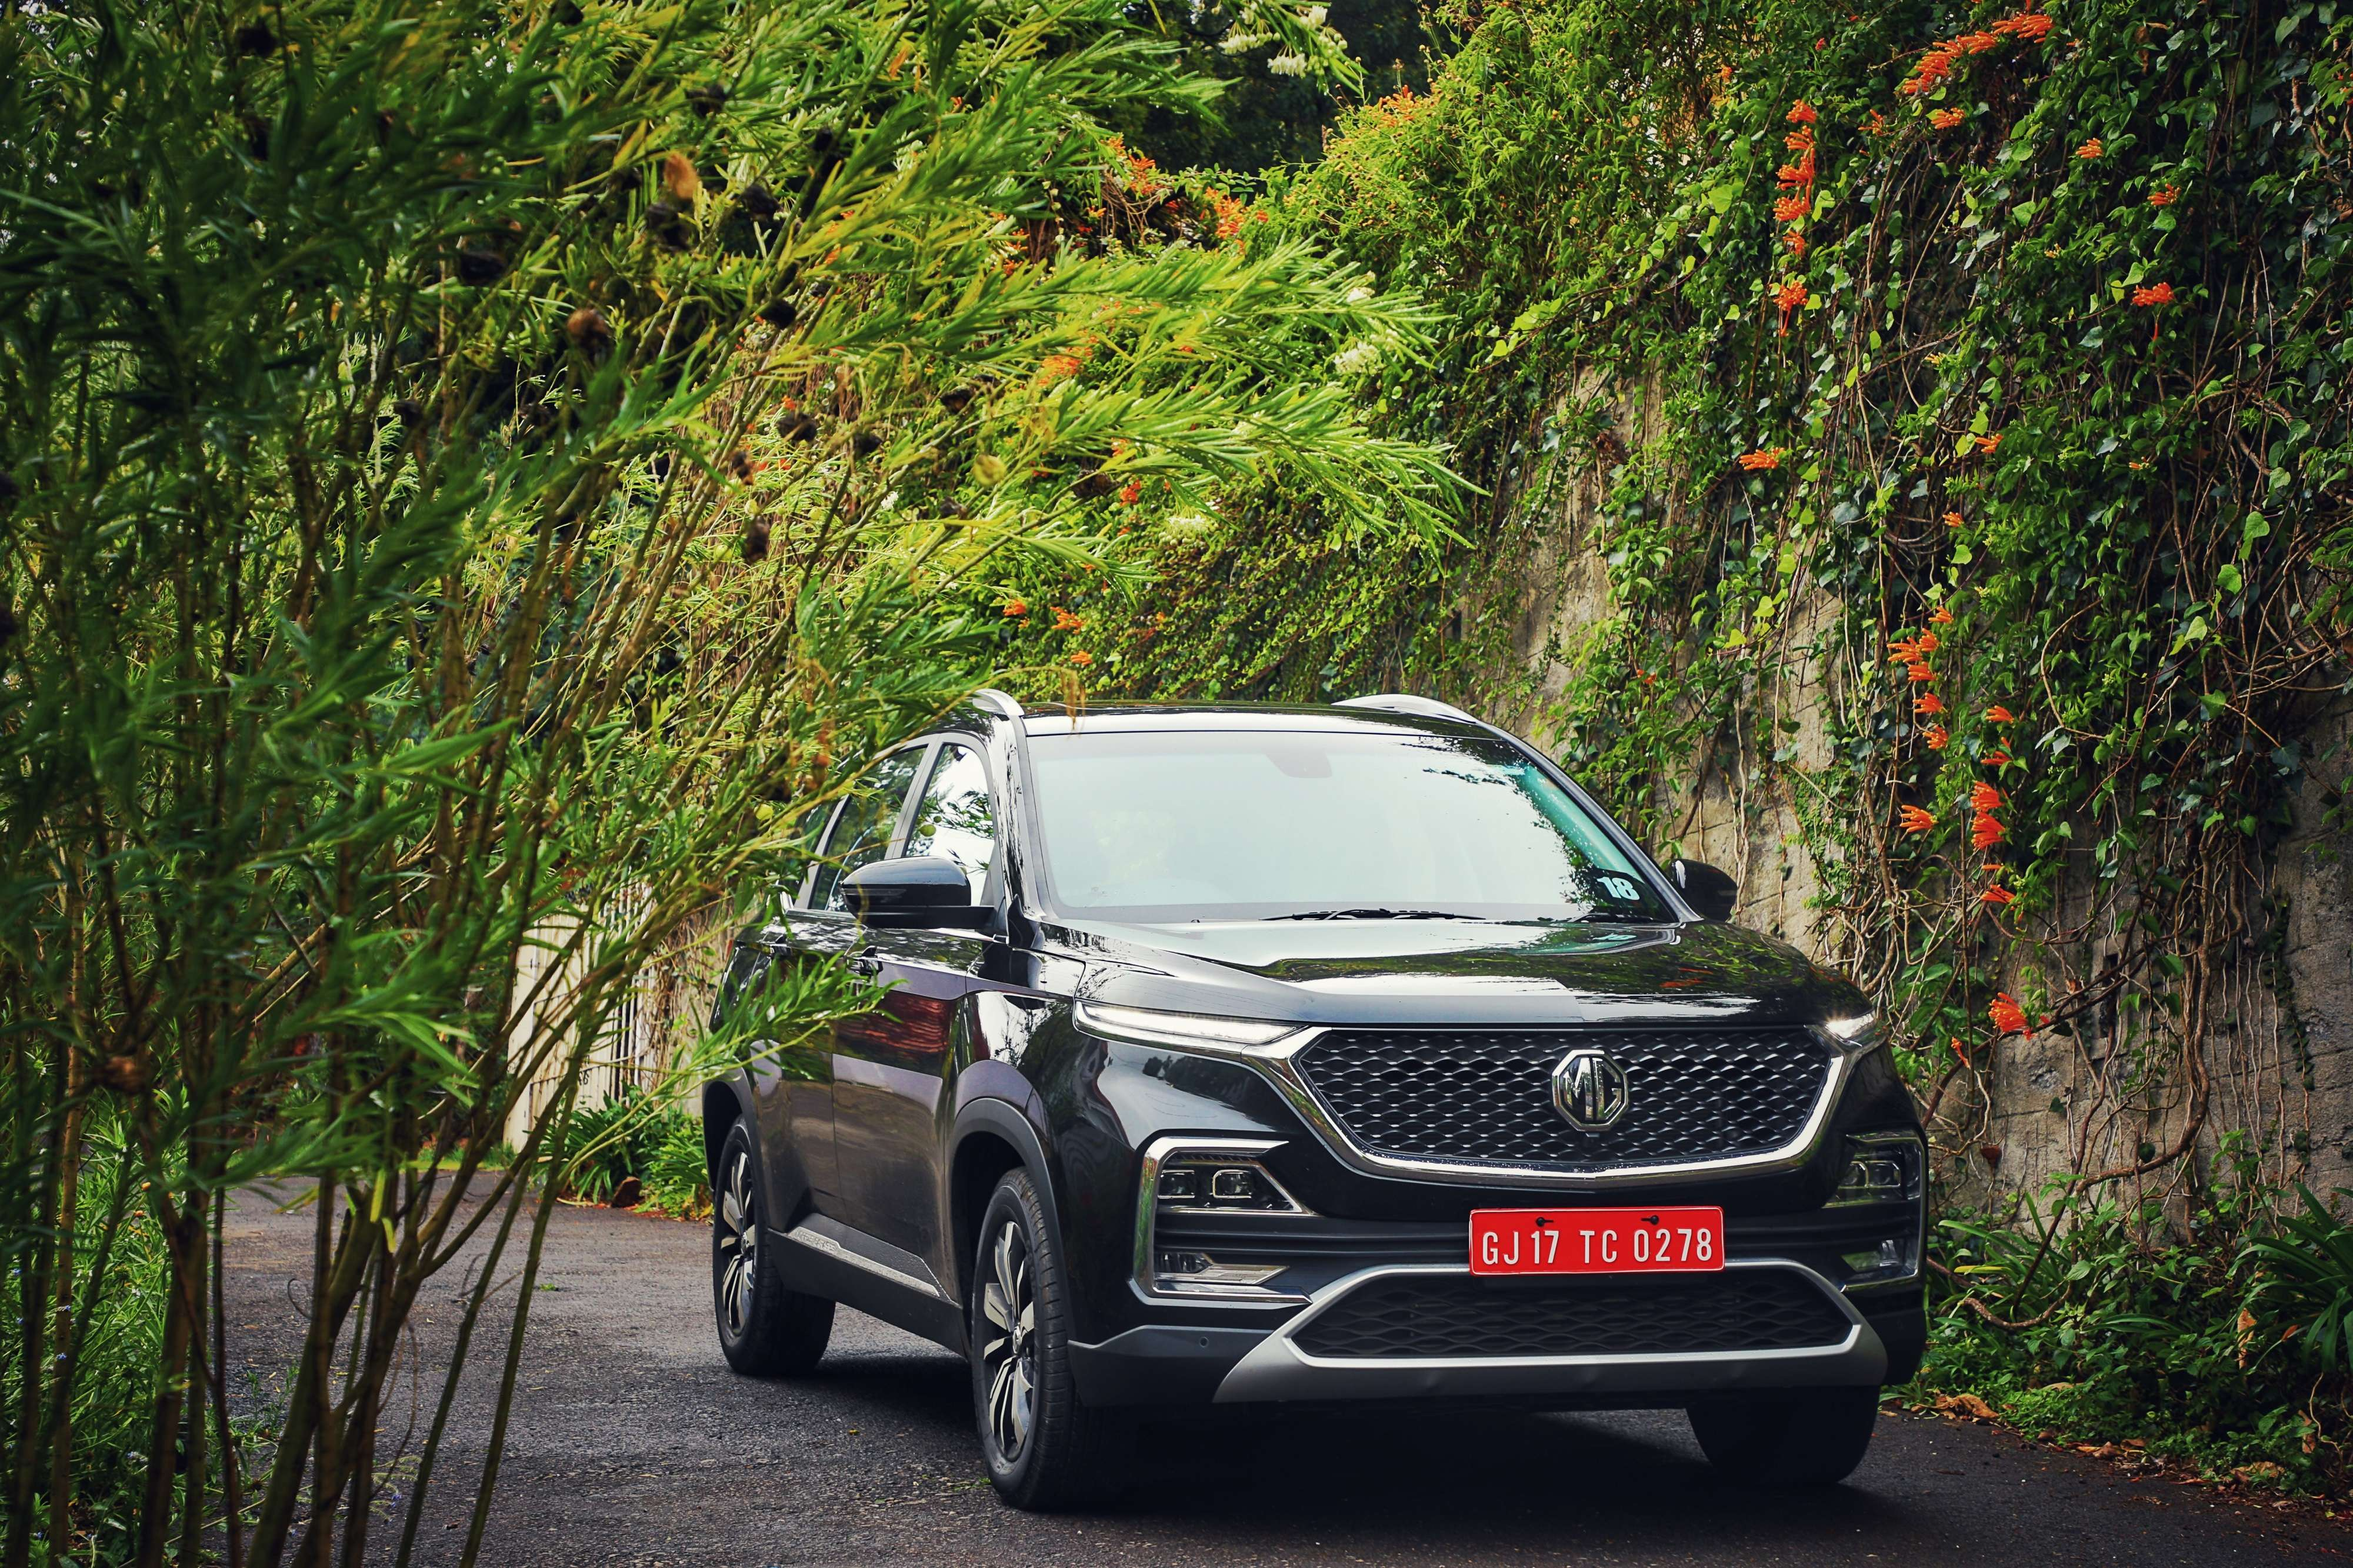 Mg Hector Booking More Than 50 Of Mg Hector Bookings Attributed To